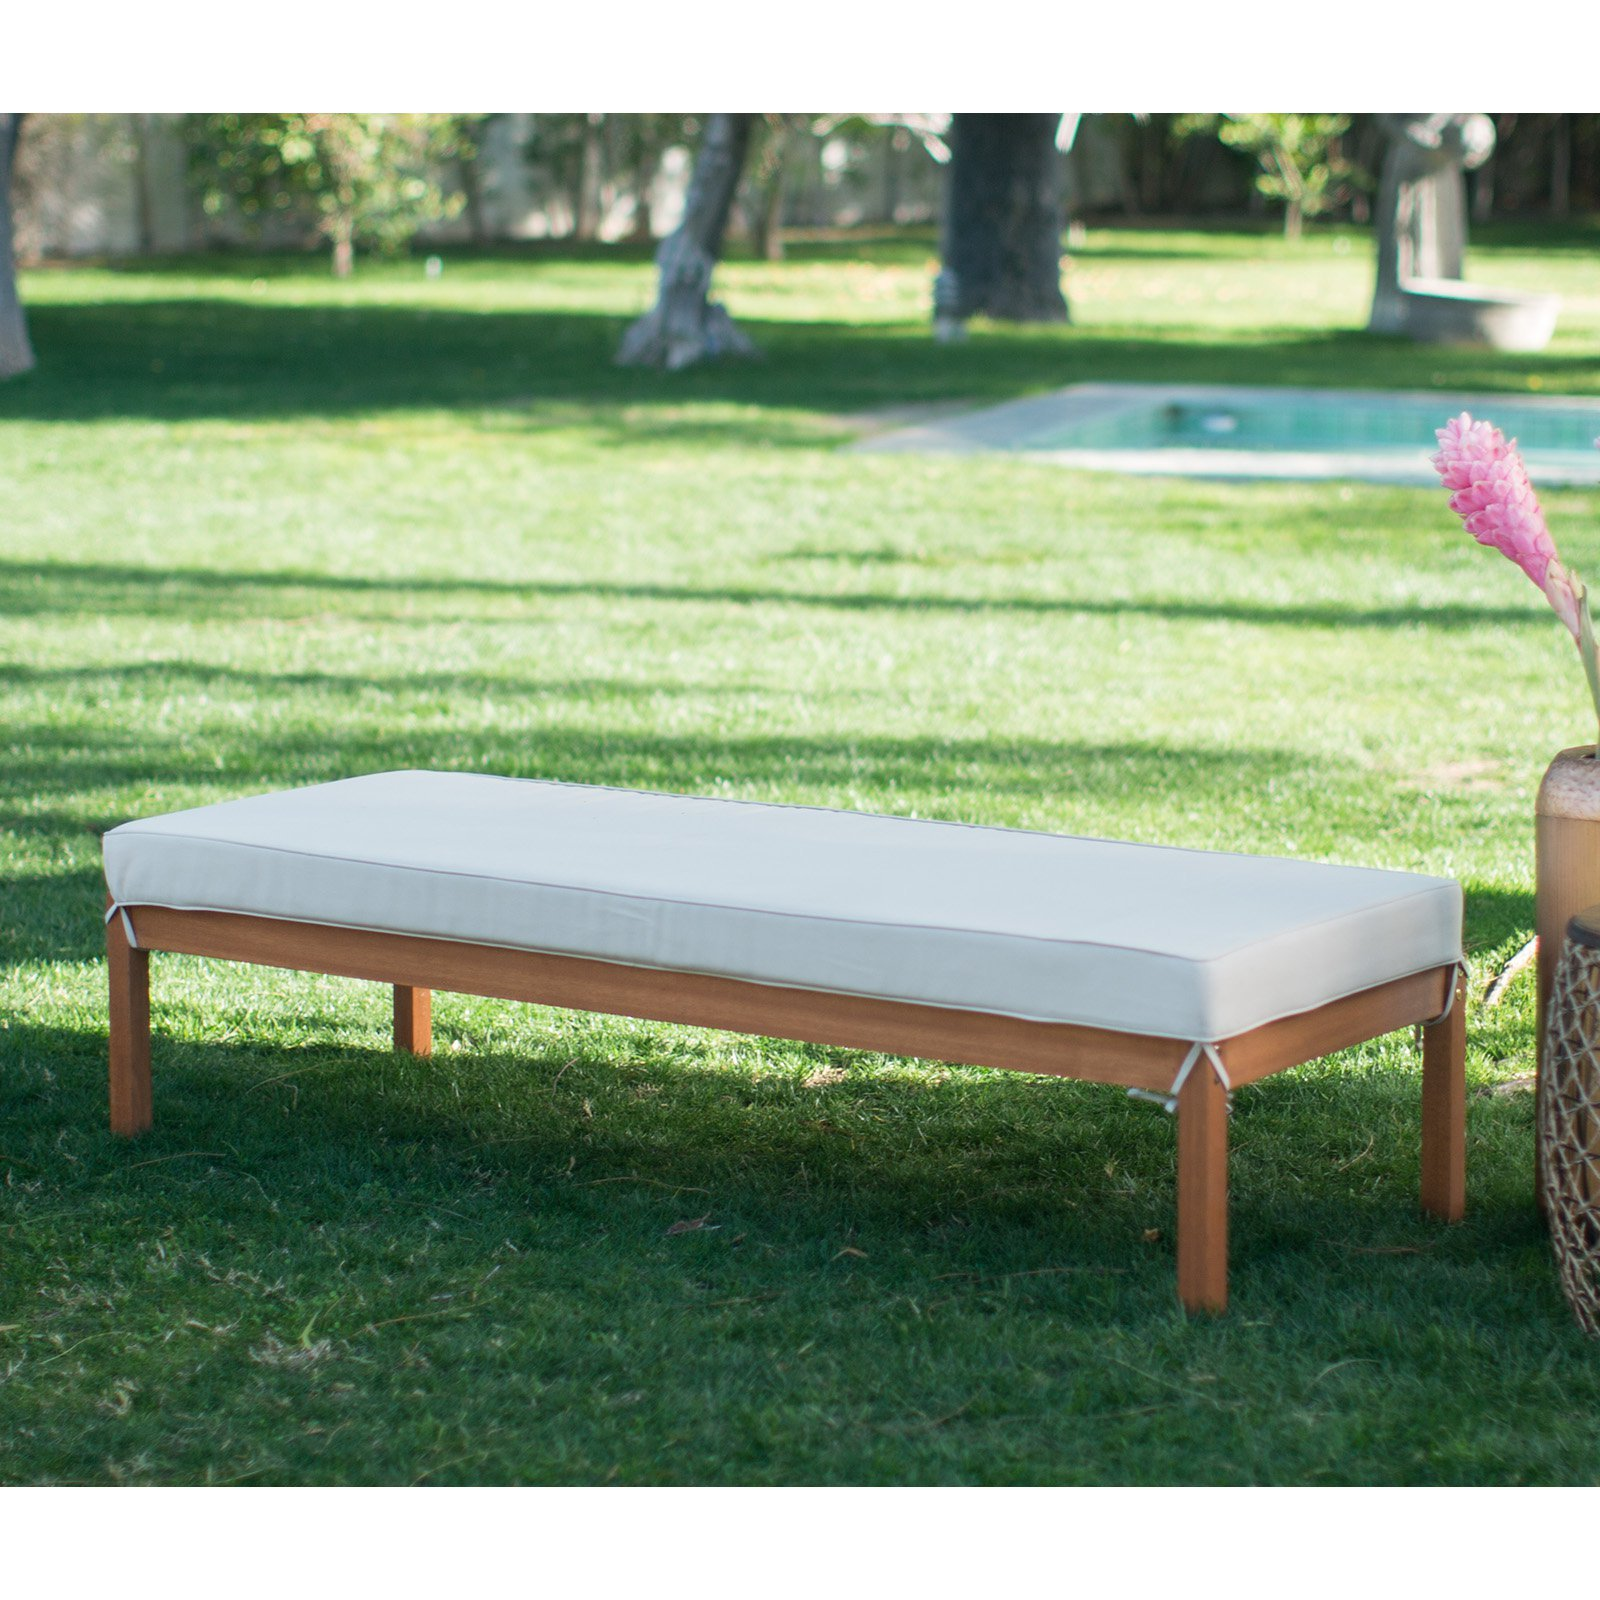 Relaxed, Island Design Brighton Eucalyptus Wood Outdoor Rectangular Daybed Ottoman Comes In Natural finish With Cream Cushion by Belham Living